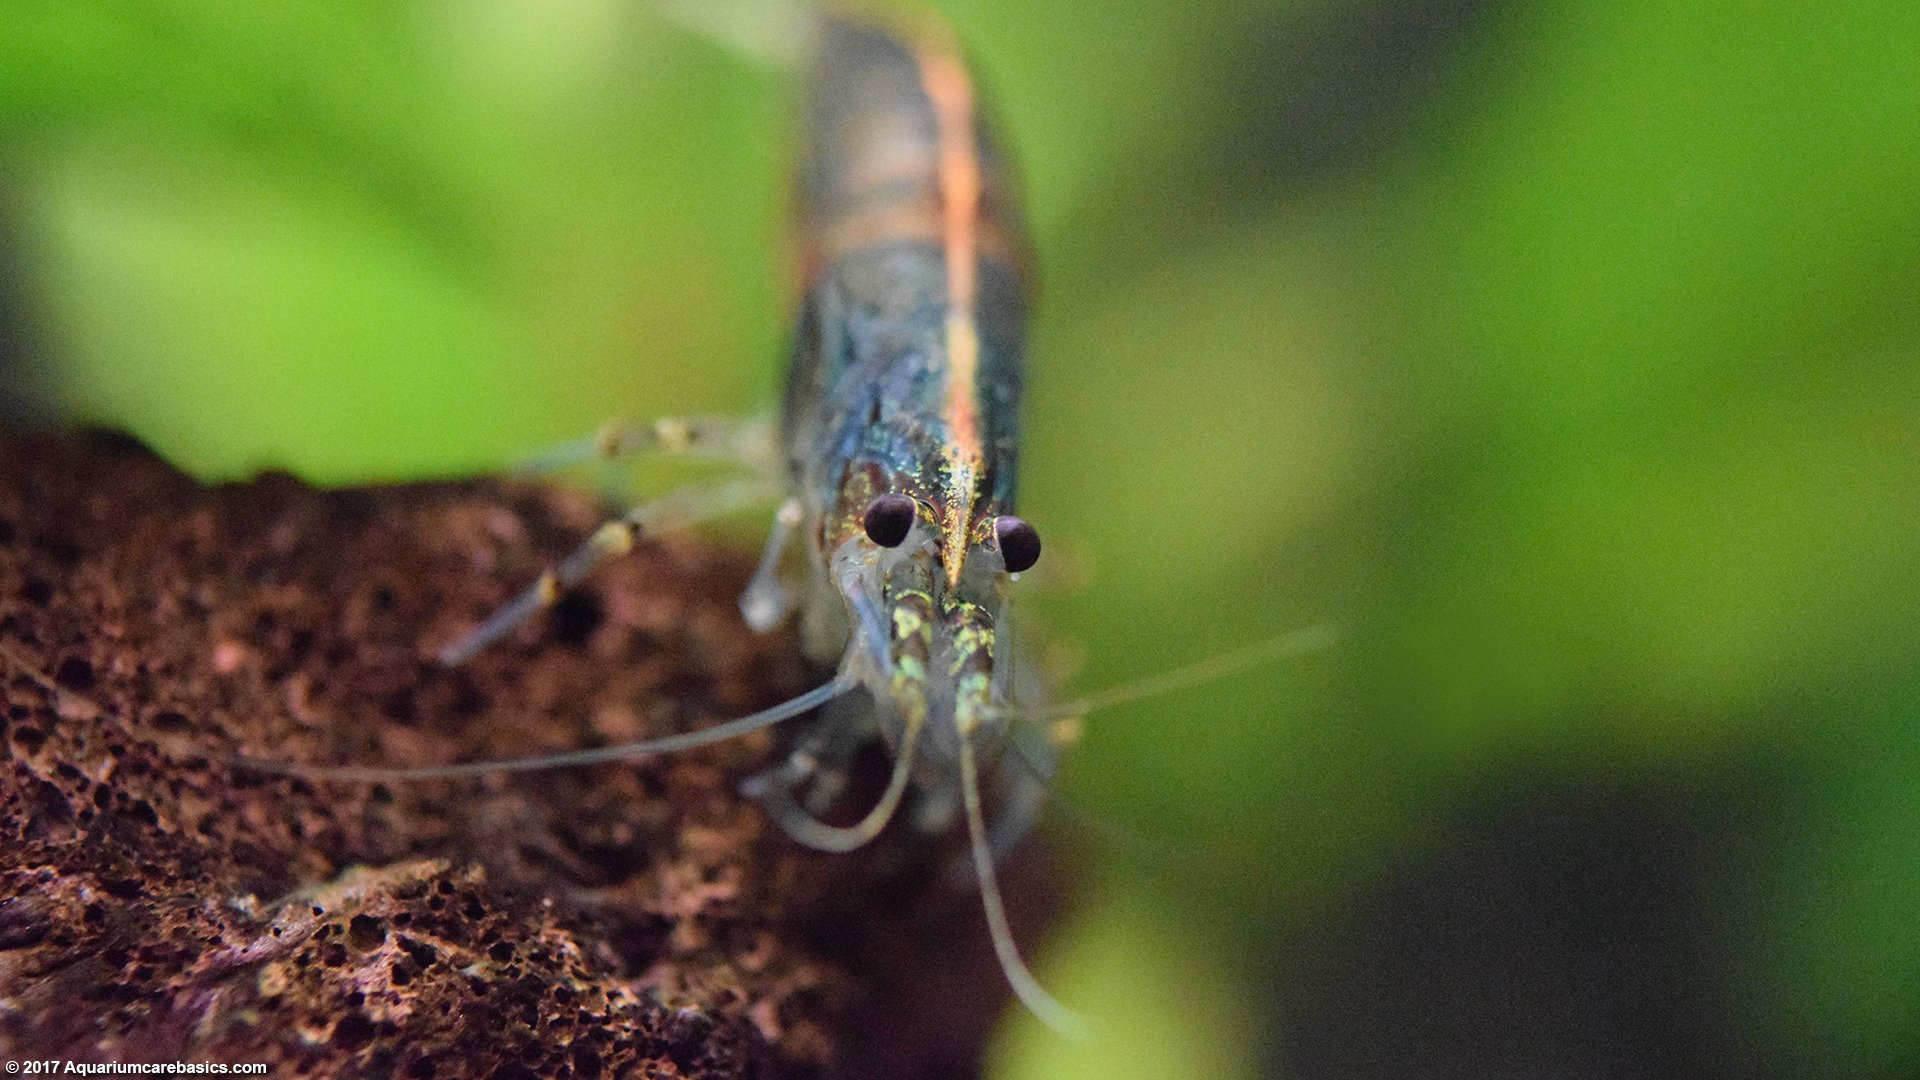 Freshwater Shrimp Can Be Great Additions To A Tank - Video